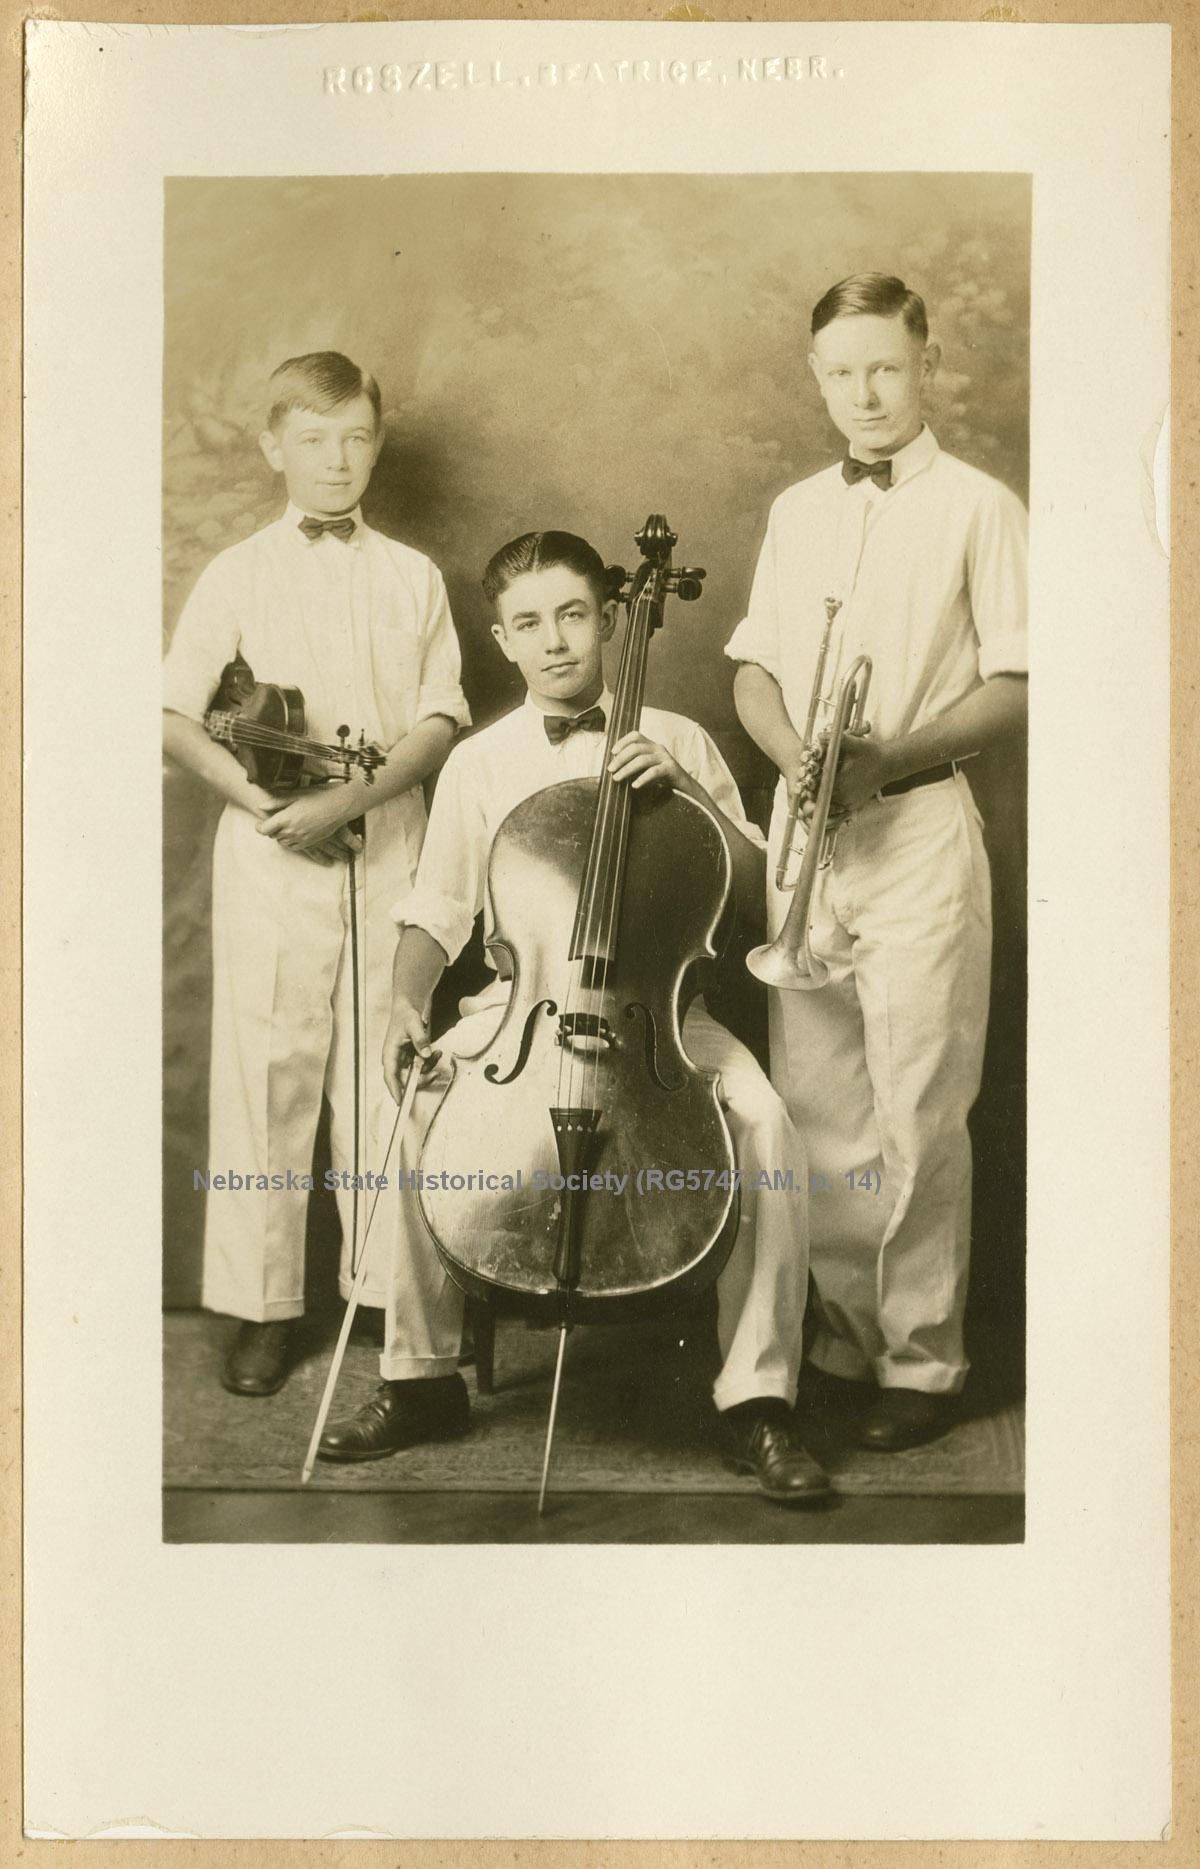 Concert Trio with Donald Abbott and Arlington Brugh (RG5747.AM, p. 14)